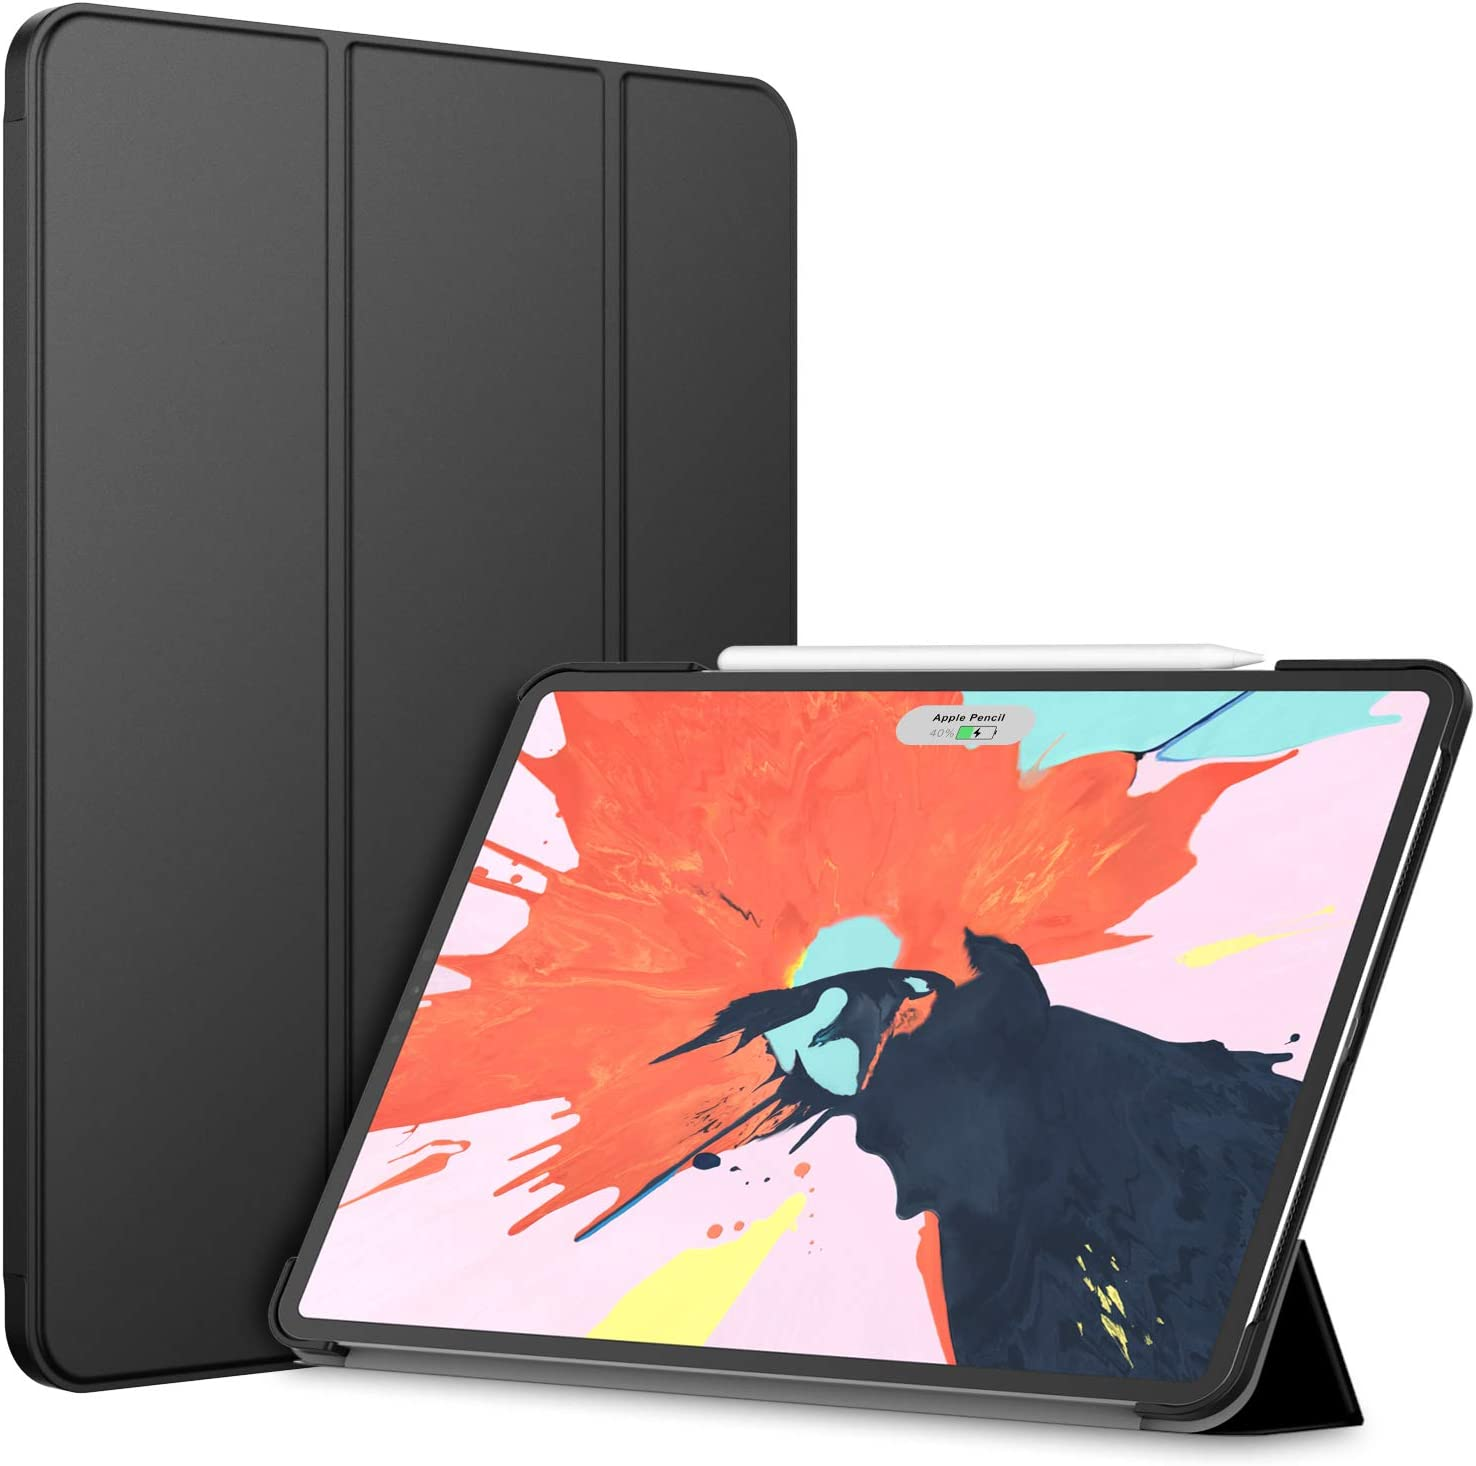 JETech Case for iPad Pro 12.9-Inch 2018 Model (NOT for 2020 Model), Compatible with Pencil, Cover Auto Wake/Sleep, Black